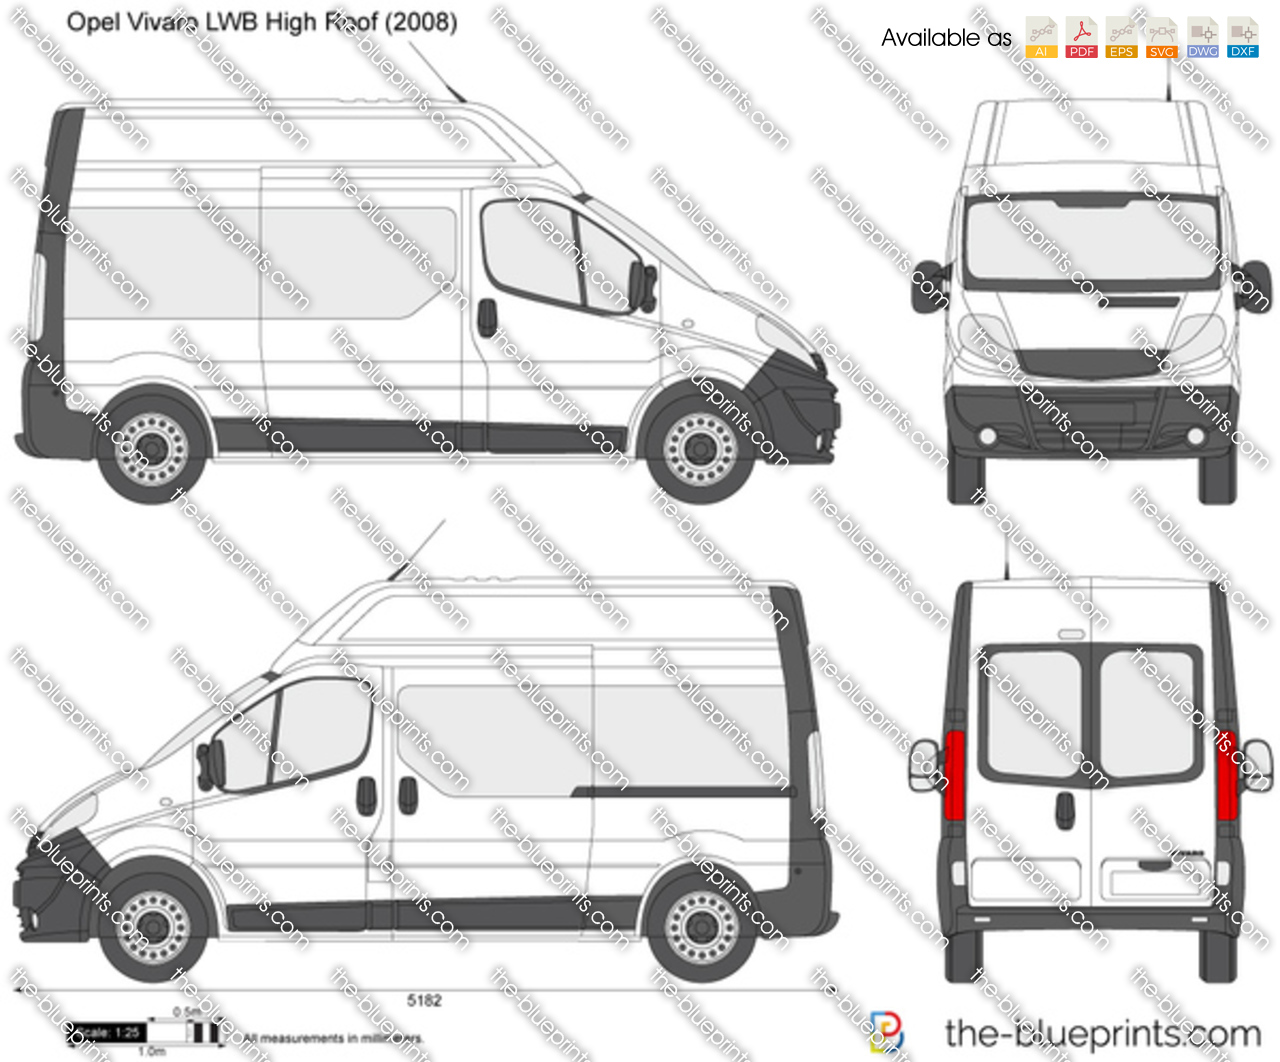 opel vivaro lwb high roof vector drawing. Black Bedroom Furniture Sets. Home Design Ideas